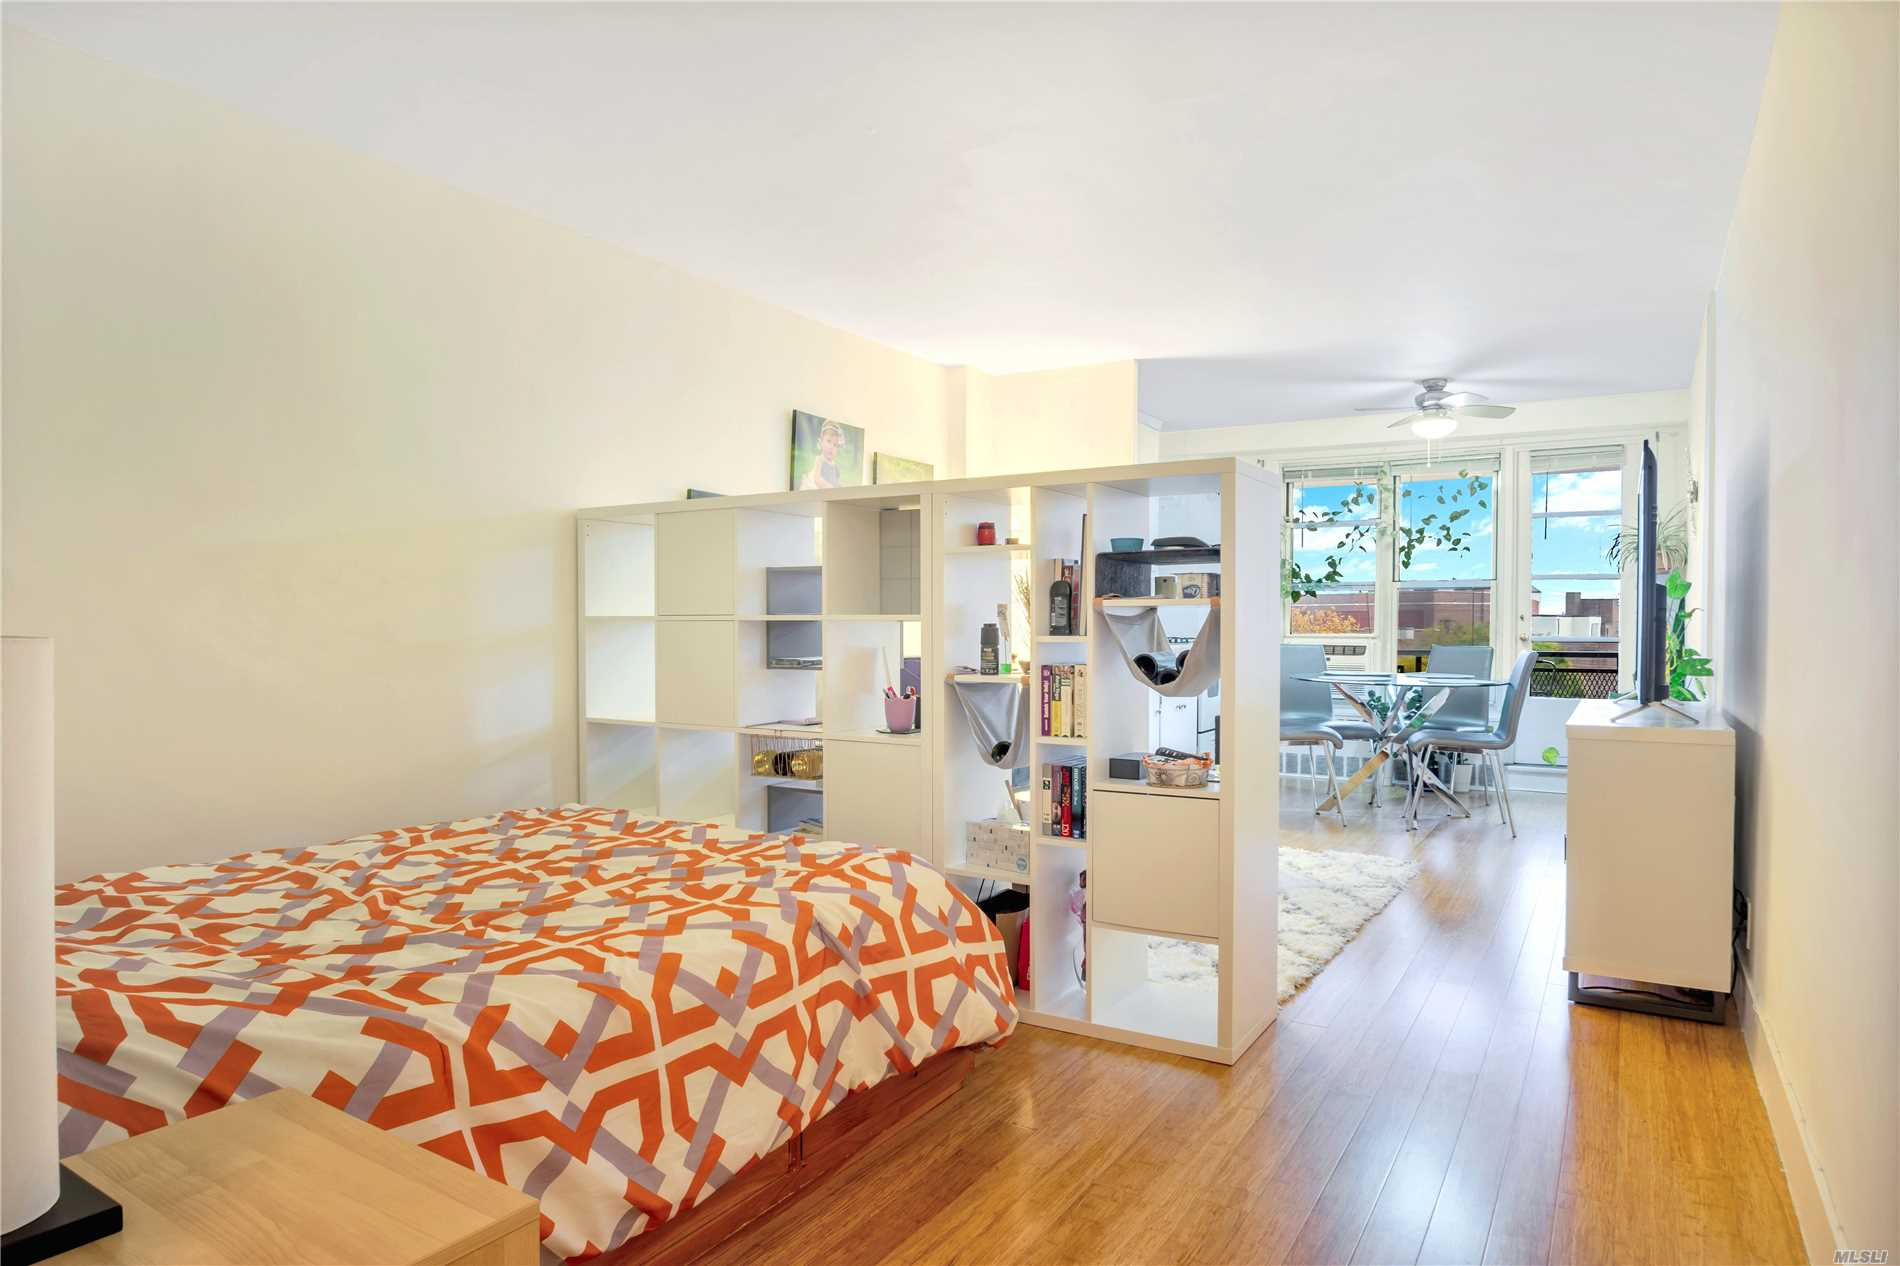 Affordable Studio With Terrace And Spectacular Views!